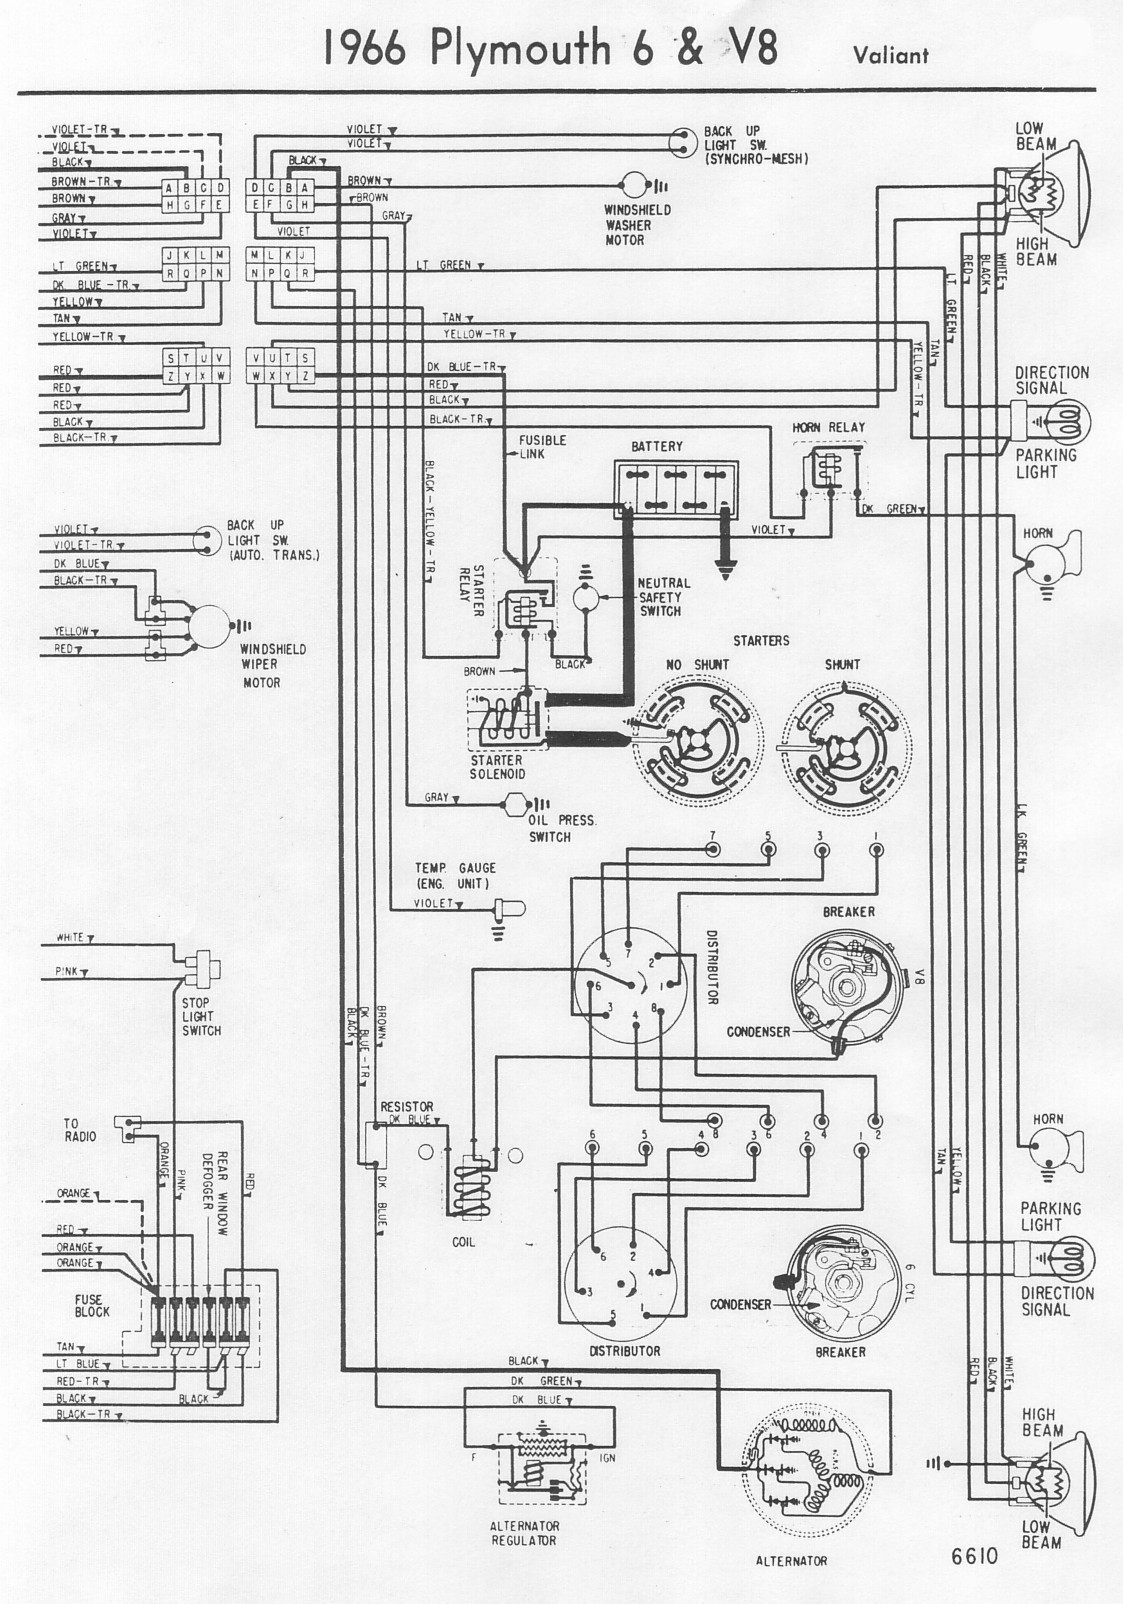 Stupendous 1966 Plymouth Valiant Wiring Diagram General Wiring Diagram Data Wiring Cloud Domeilariaidewilluminateatxorg